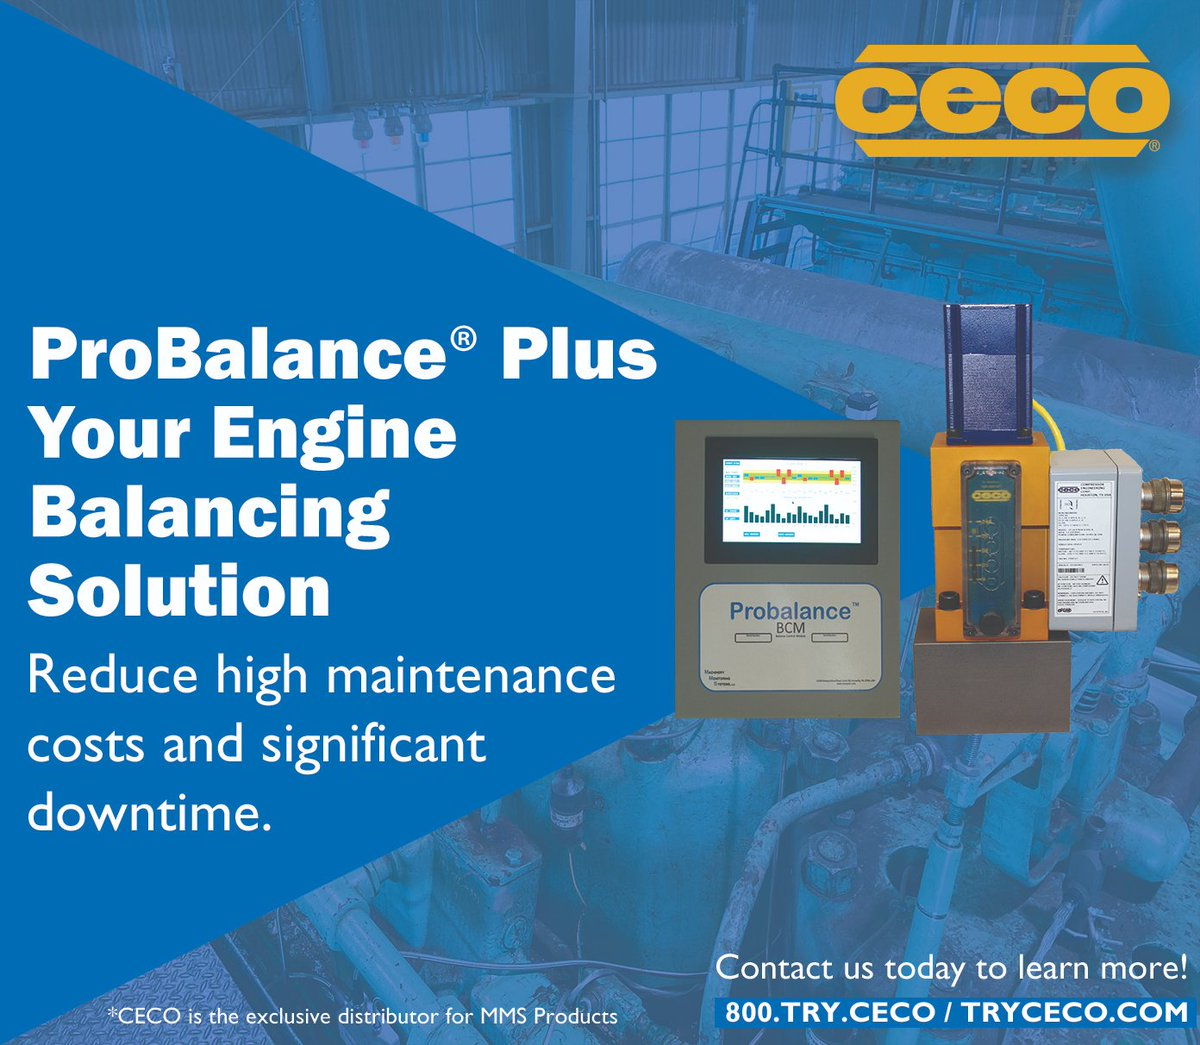 Our new cutting-edge solutions will change the way you monitor and balance your engine! Contact us to learn about our cost effective, user friendly balancing solutions. #enginebalancing  http://tryceco.com pic.twitter.com/oQmf9FJQ4R